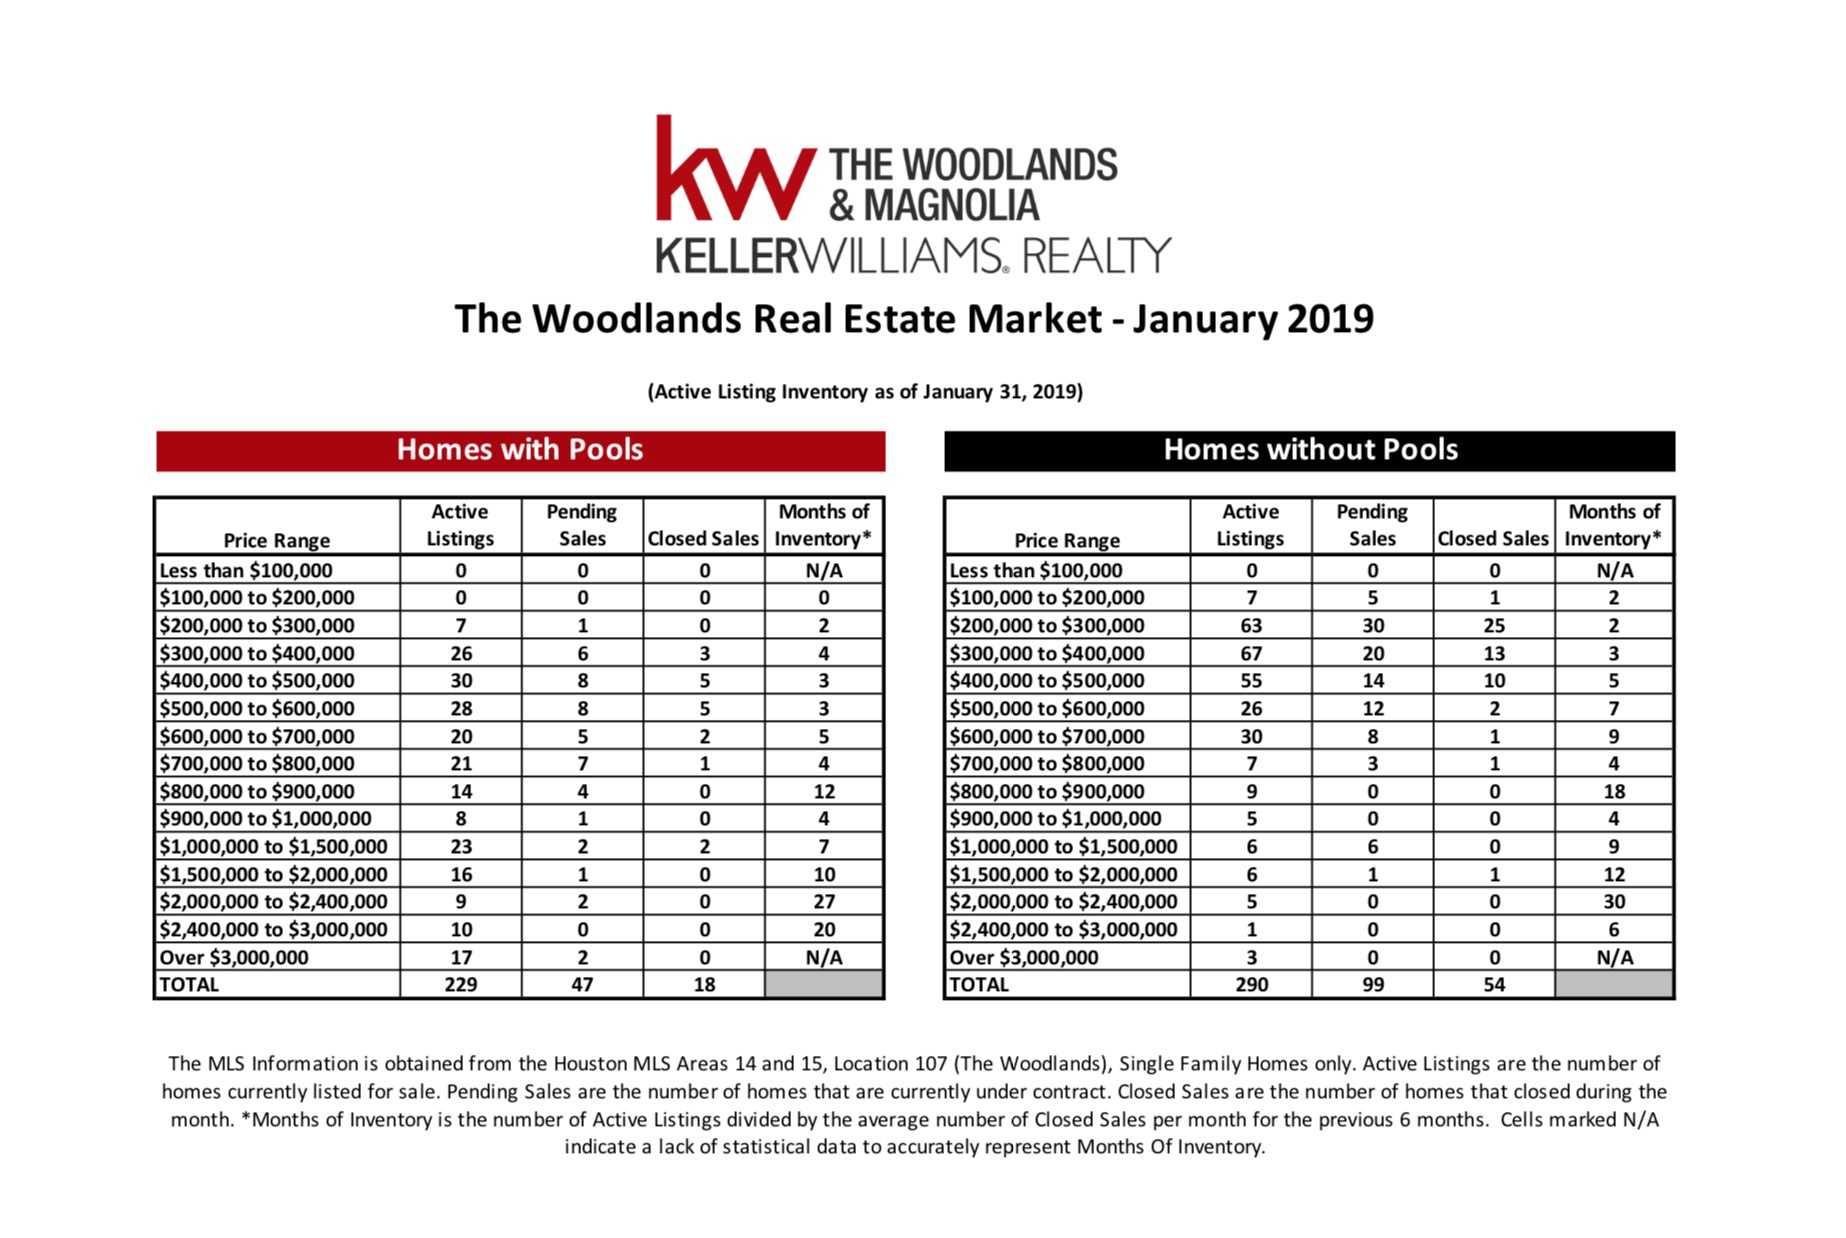 , January 2019 MarketWatch Report – The Woodlands, KW Woodlands